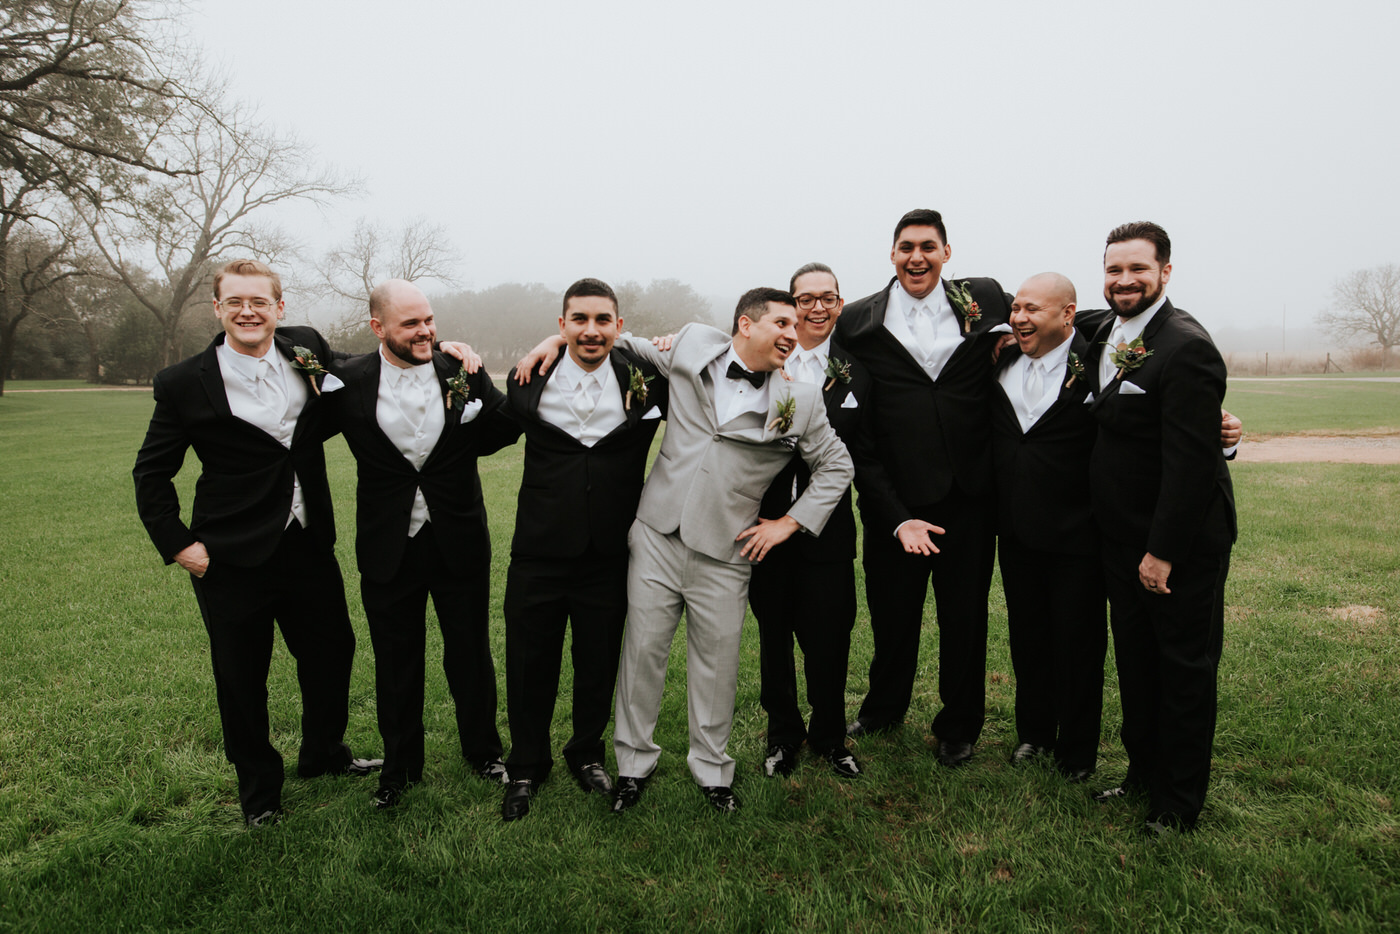 Groom and wedding party at Austin wedding